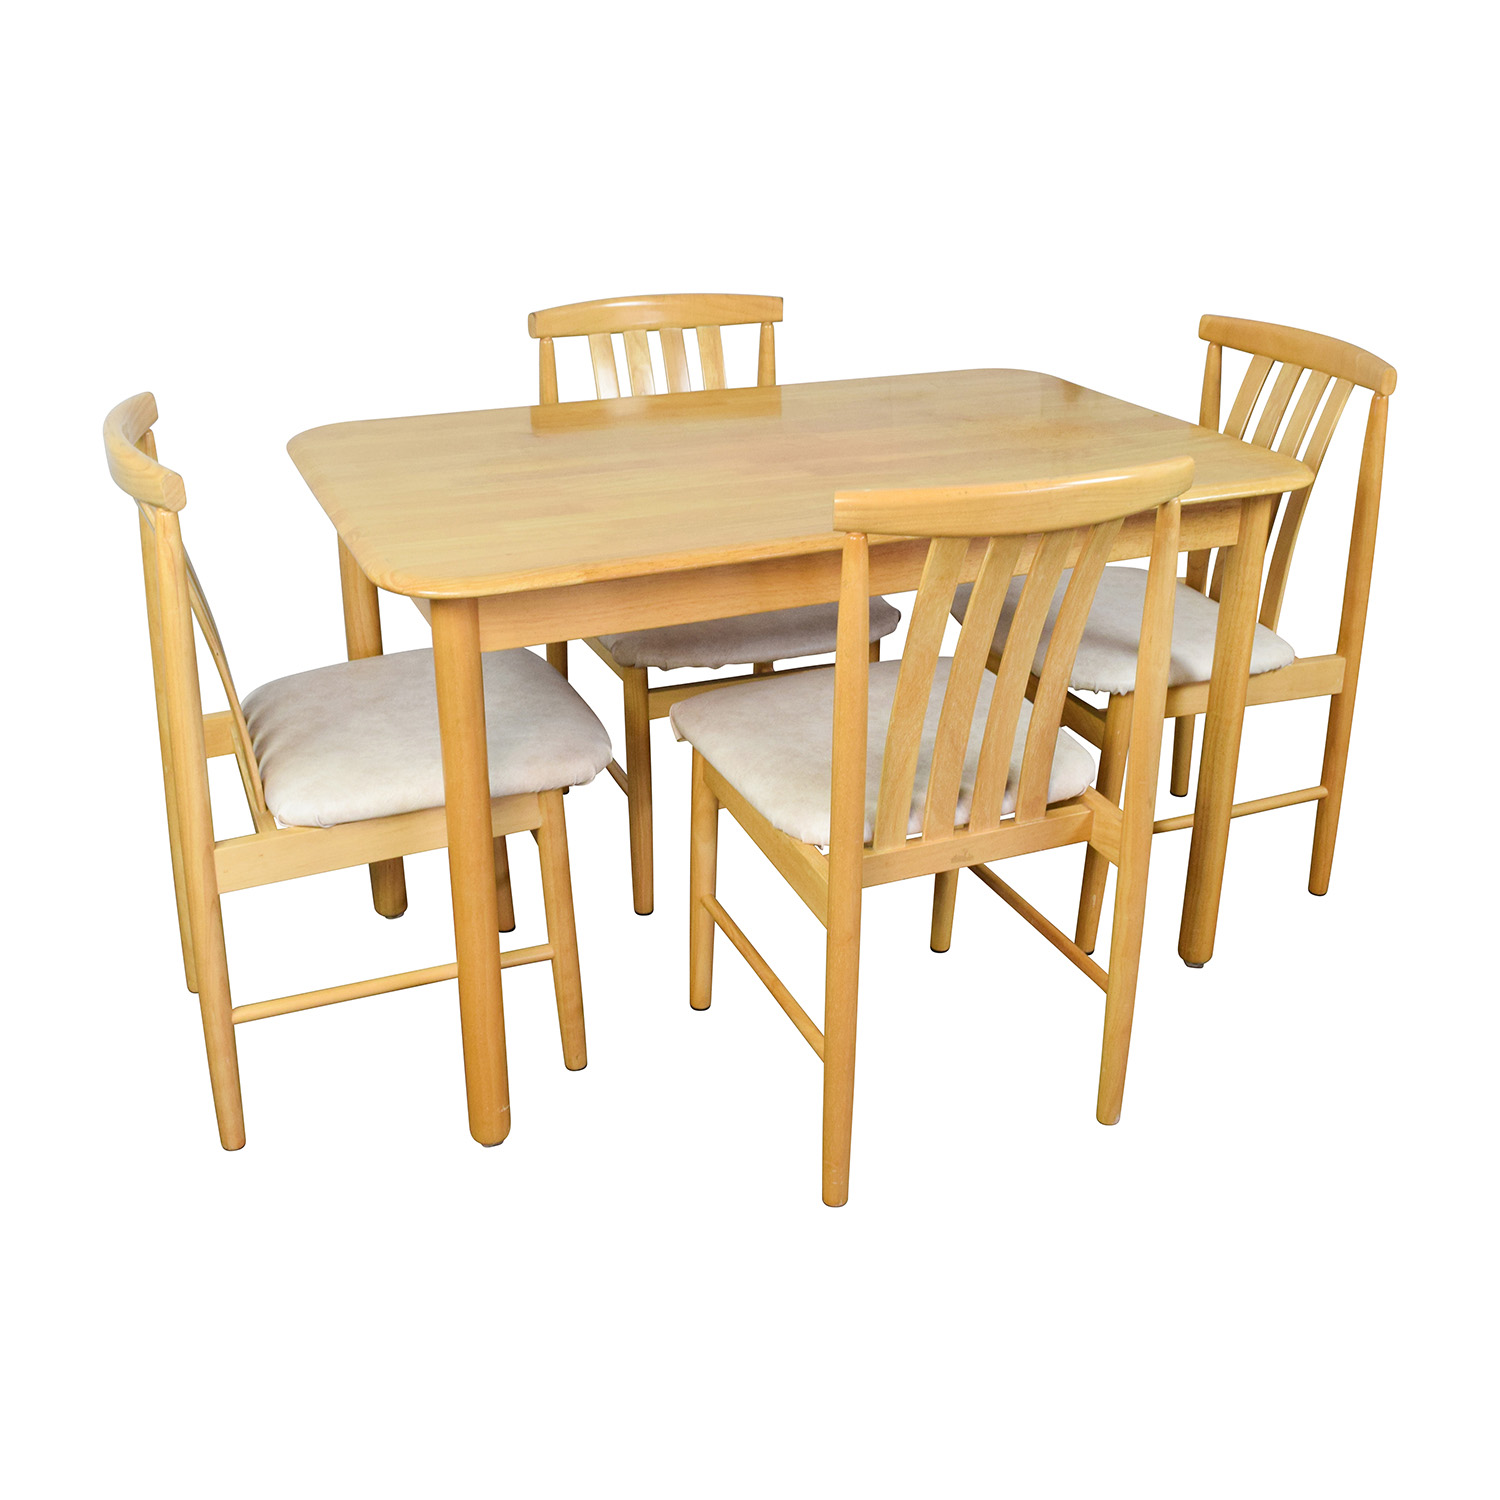 Light Wood Dining Table with Four Chairs Dining Sets